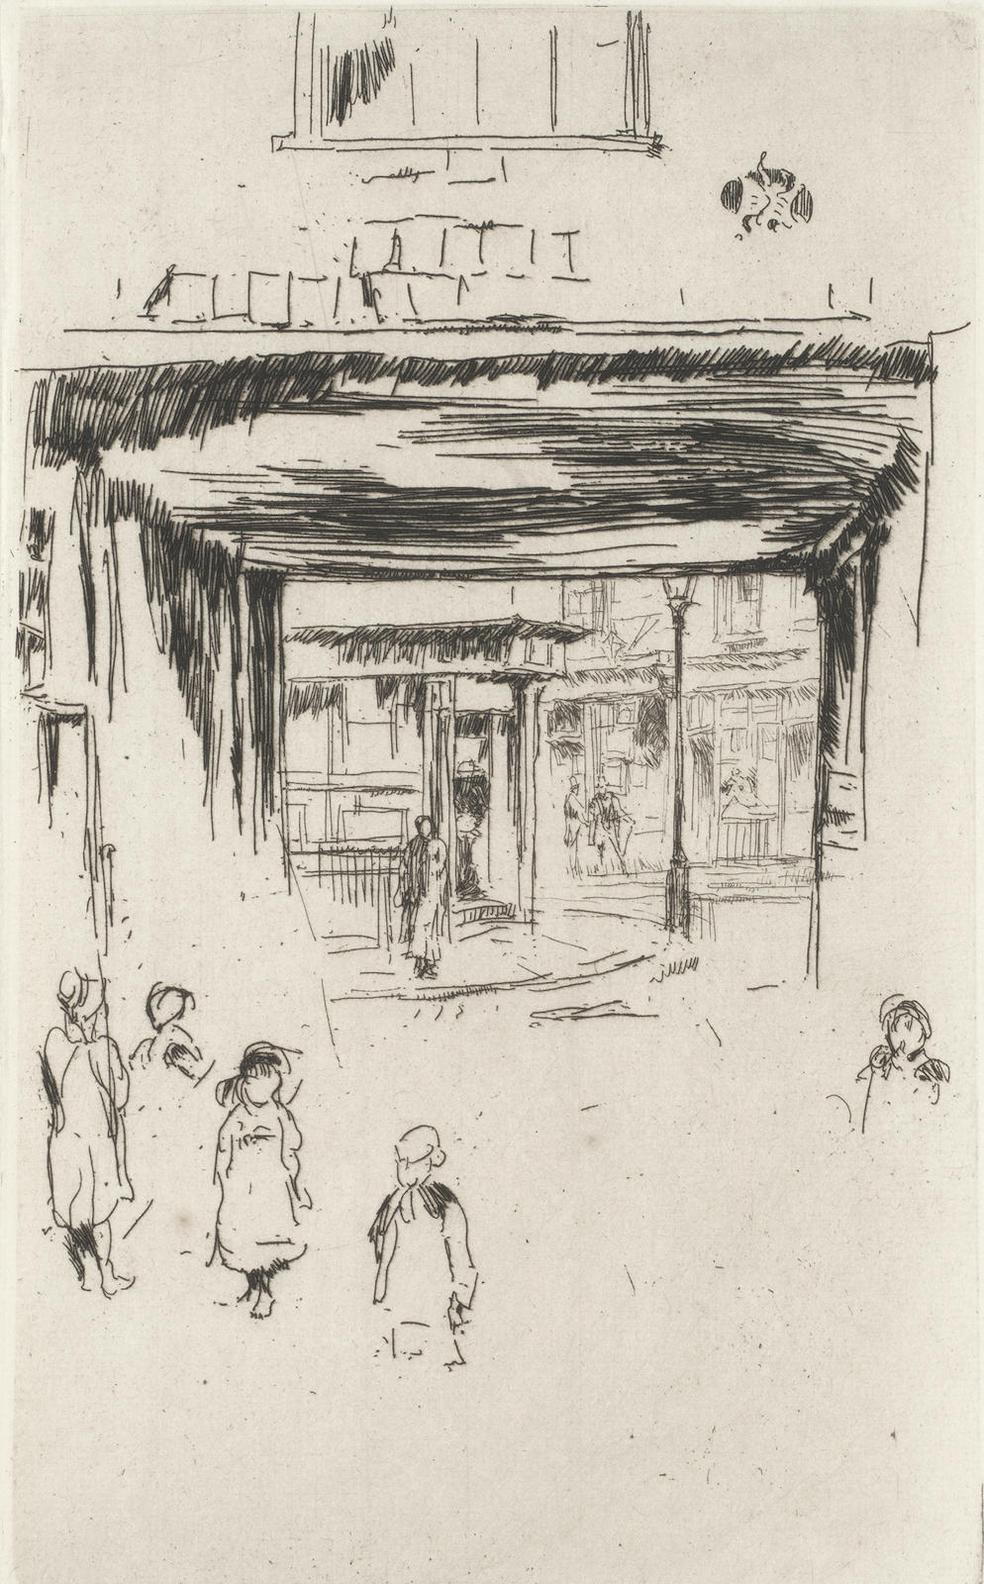 James Abbott McNeill Whistler-Drury Lane, From A Set Of Twenty-Six Etchings (Second Venice Set) (Kennedy 237; Glasgow 243)-1881